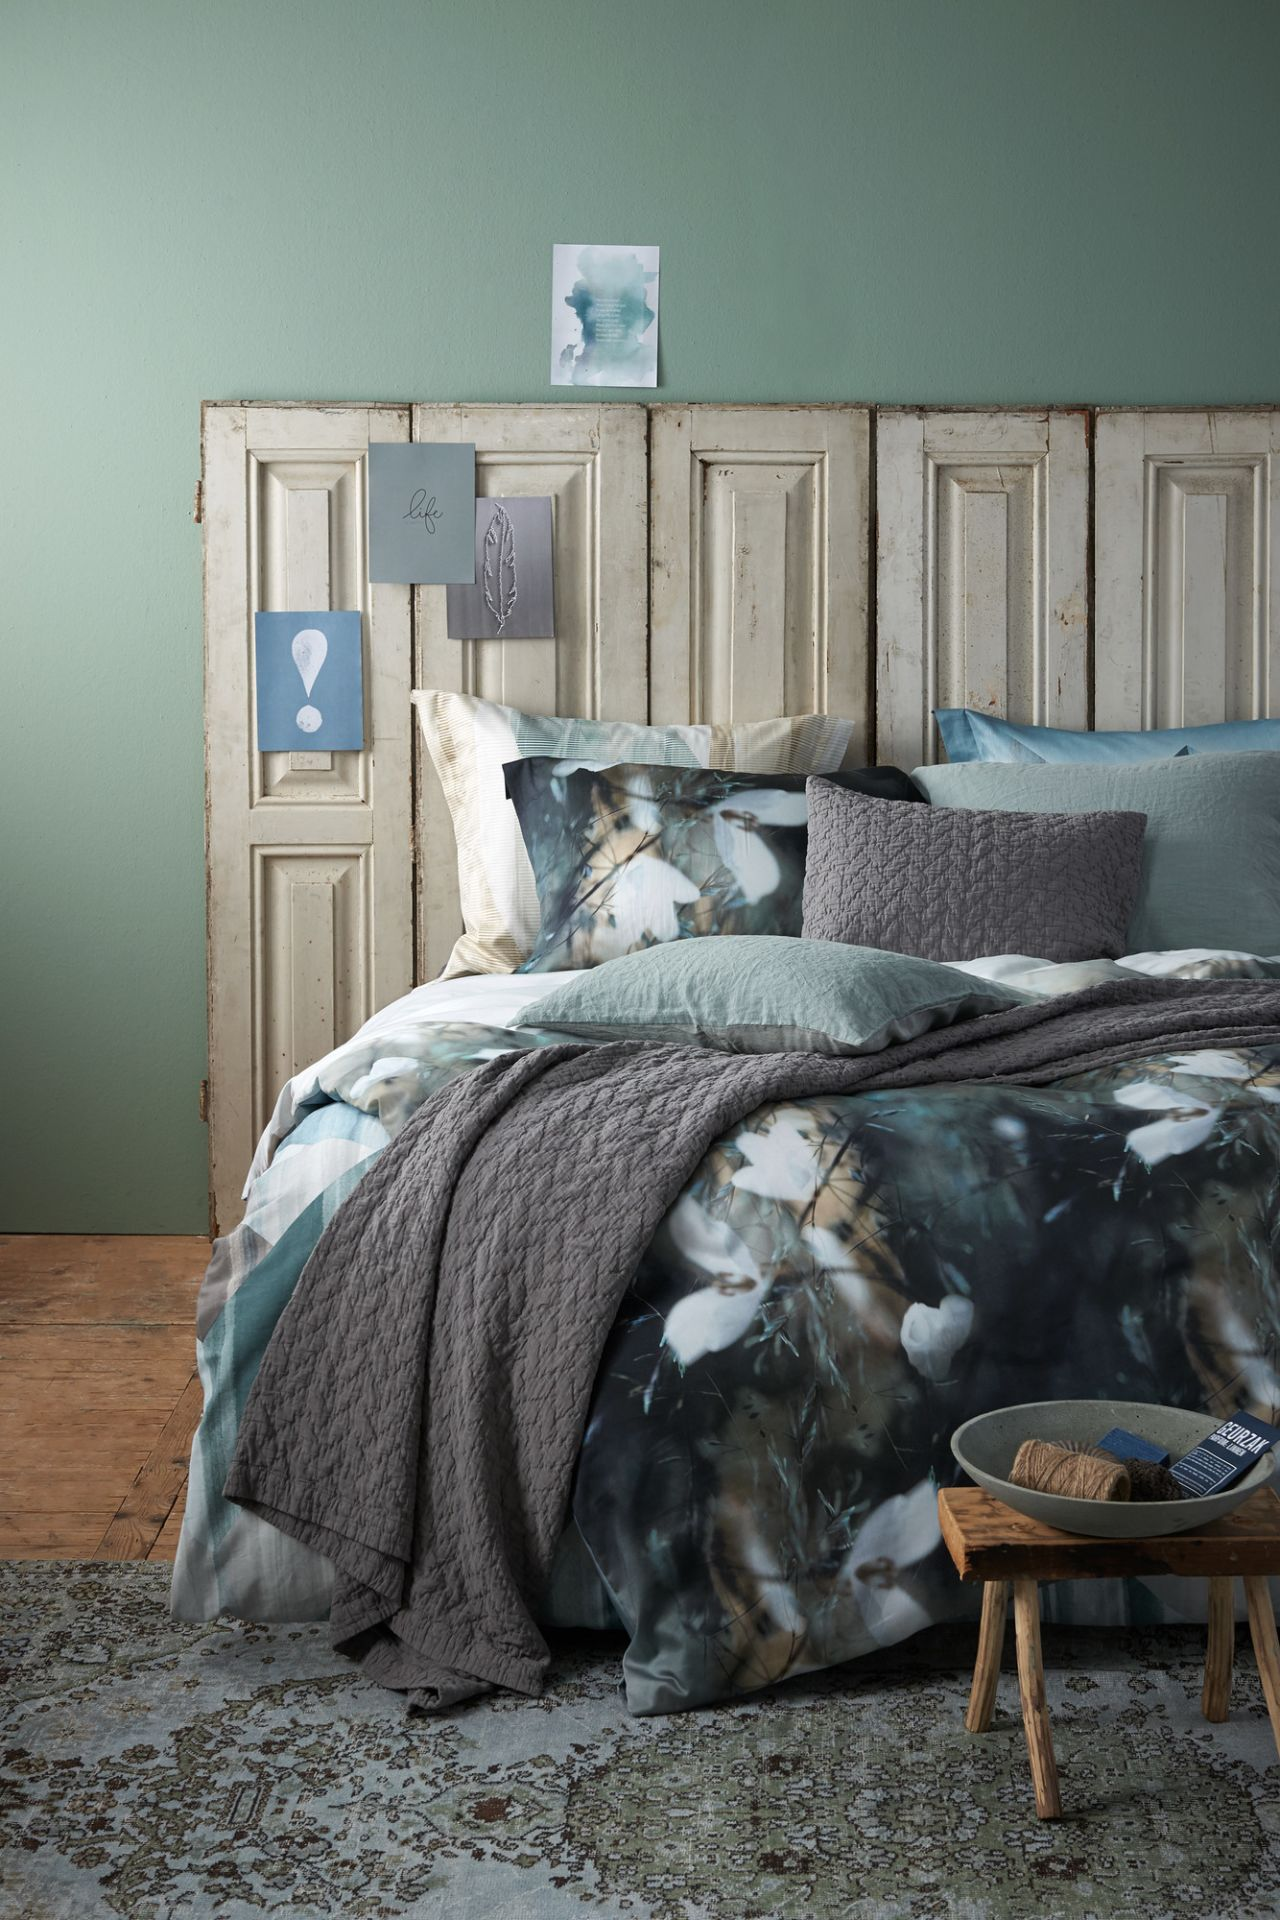 VanDyck bedtextiel Anonymous 000 Multi, Twisted 166 Vintage green, Briliant Wave 166 Vintage green, Purity 79 402 cel green, Pure 10 426 Steel grey bij Slaapkenner Lisse in Lisse